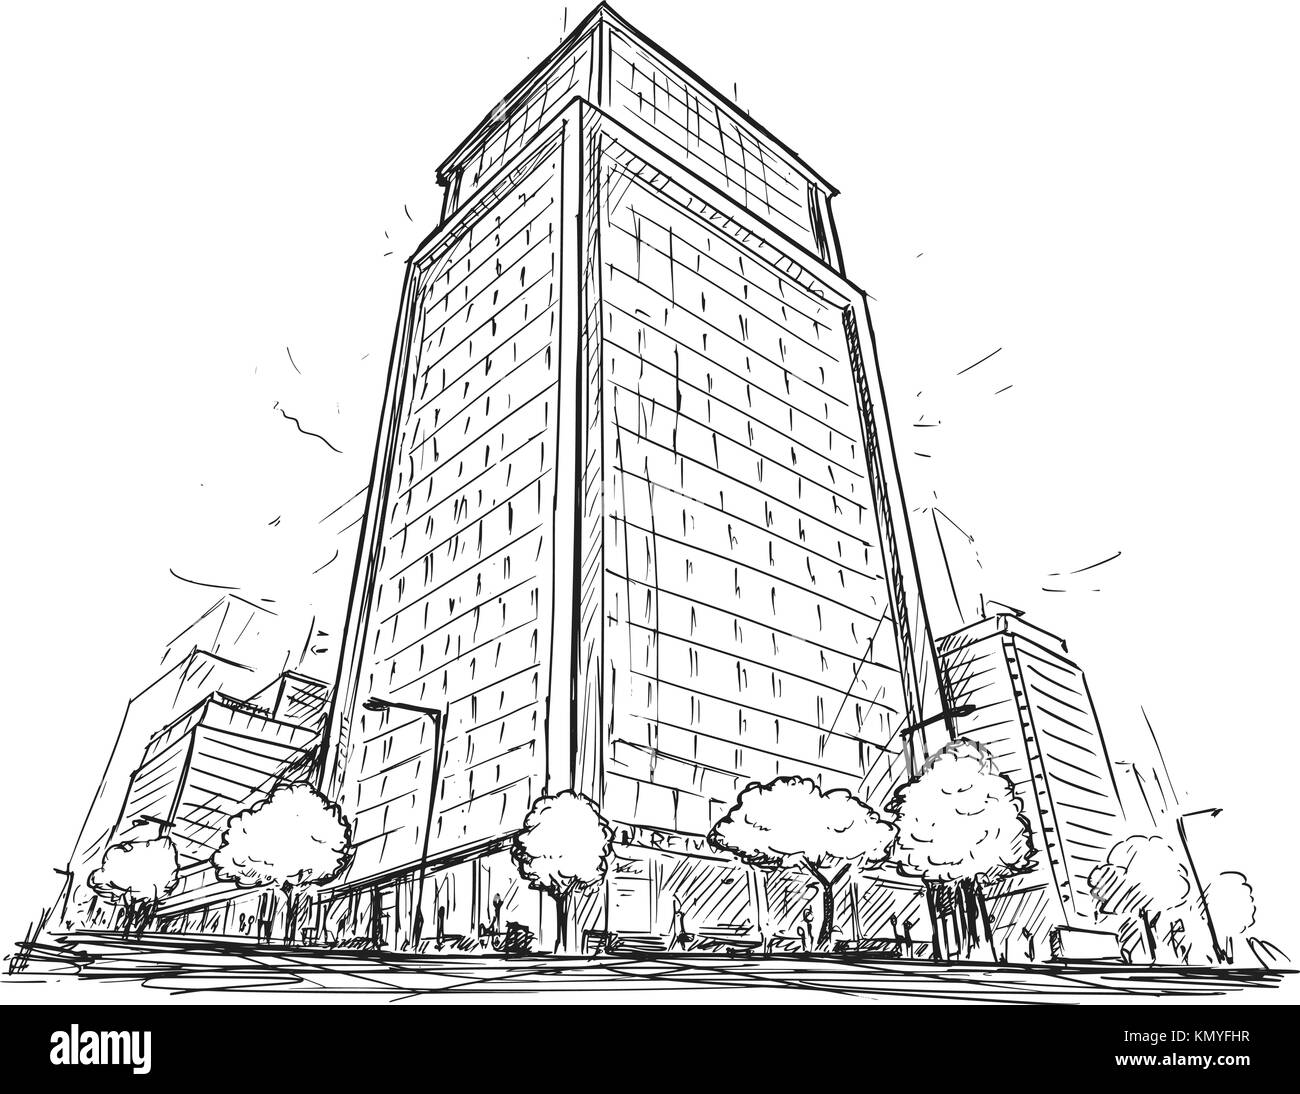 Cartoon vector architectural drawing sketch illustration of city street with high rise building. Stock Vector